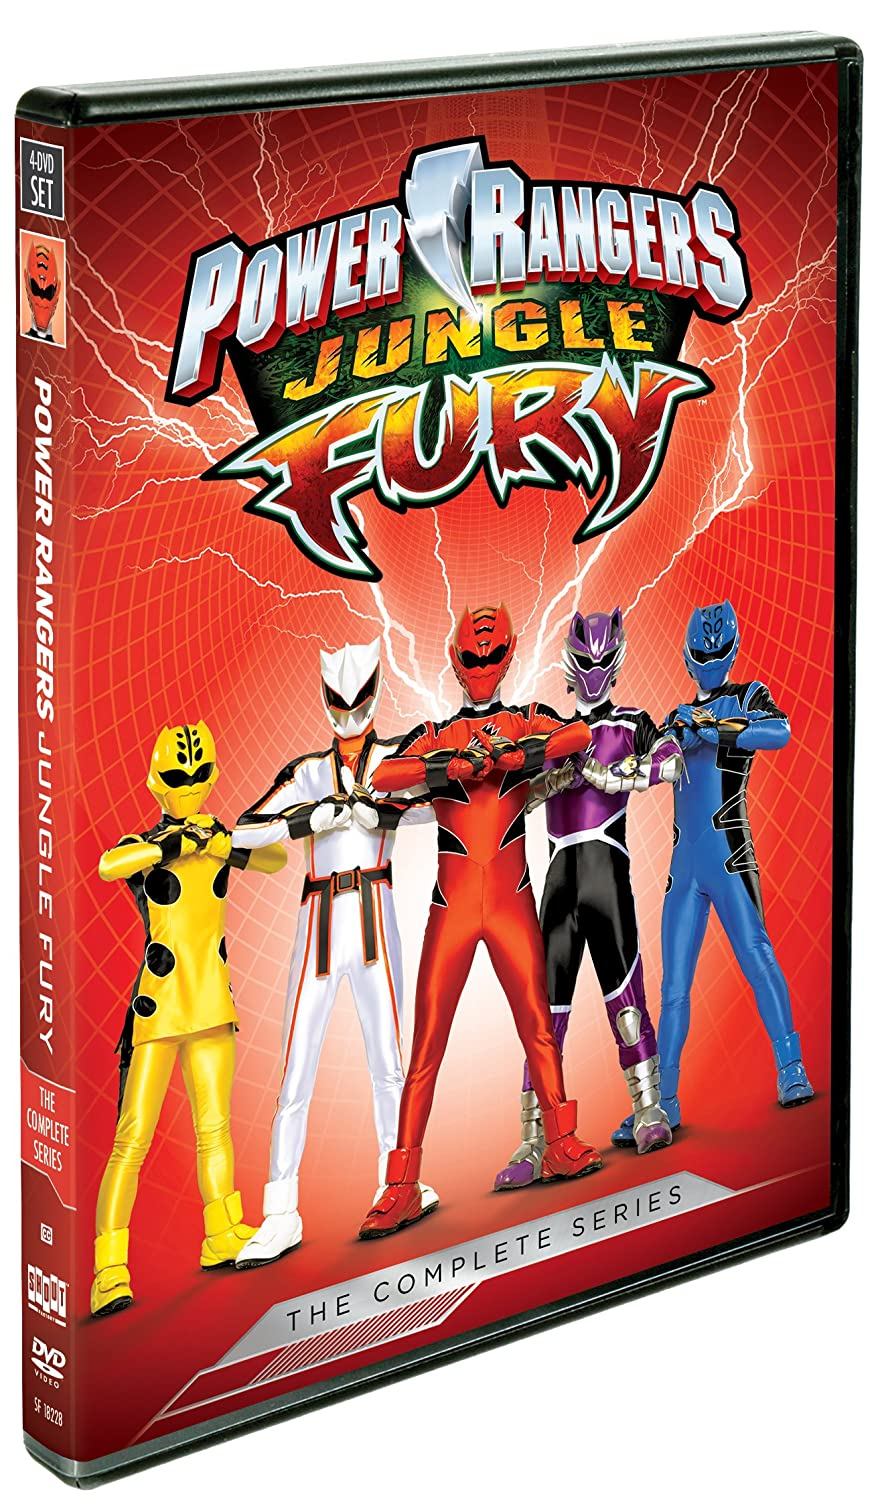 Amazon power rangers jungle fury complete series dvd amazon power rangers jungle fury complete series dvd import dvd voltagebd Image collections